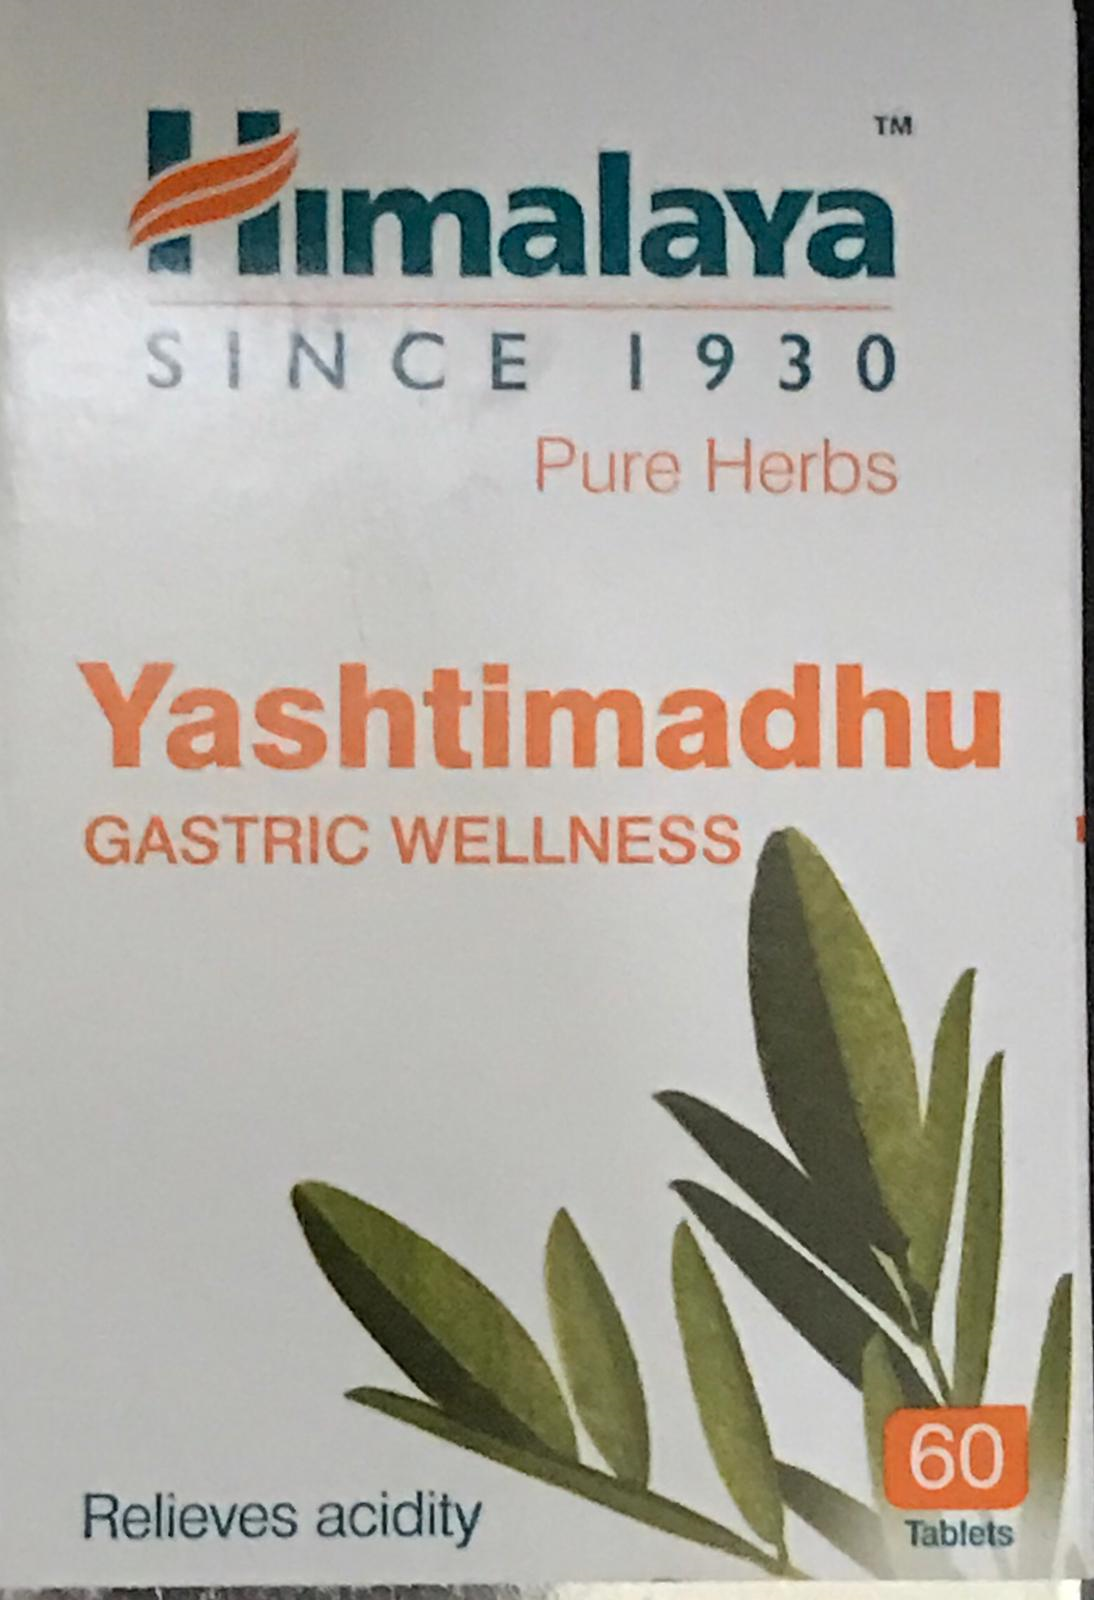 Primary image for Yashtimadhu Gastric Wellness acidity relief Himalaya 60 Tablet